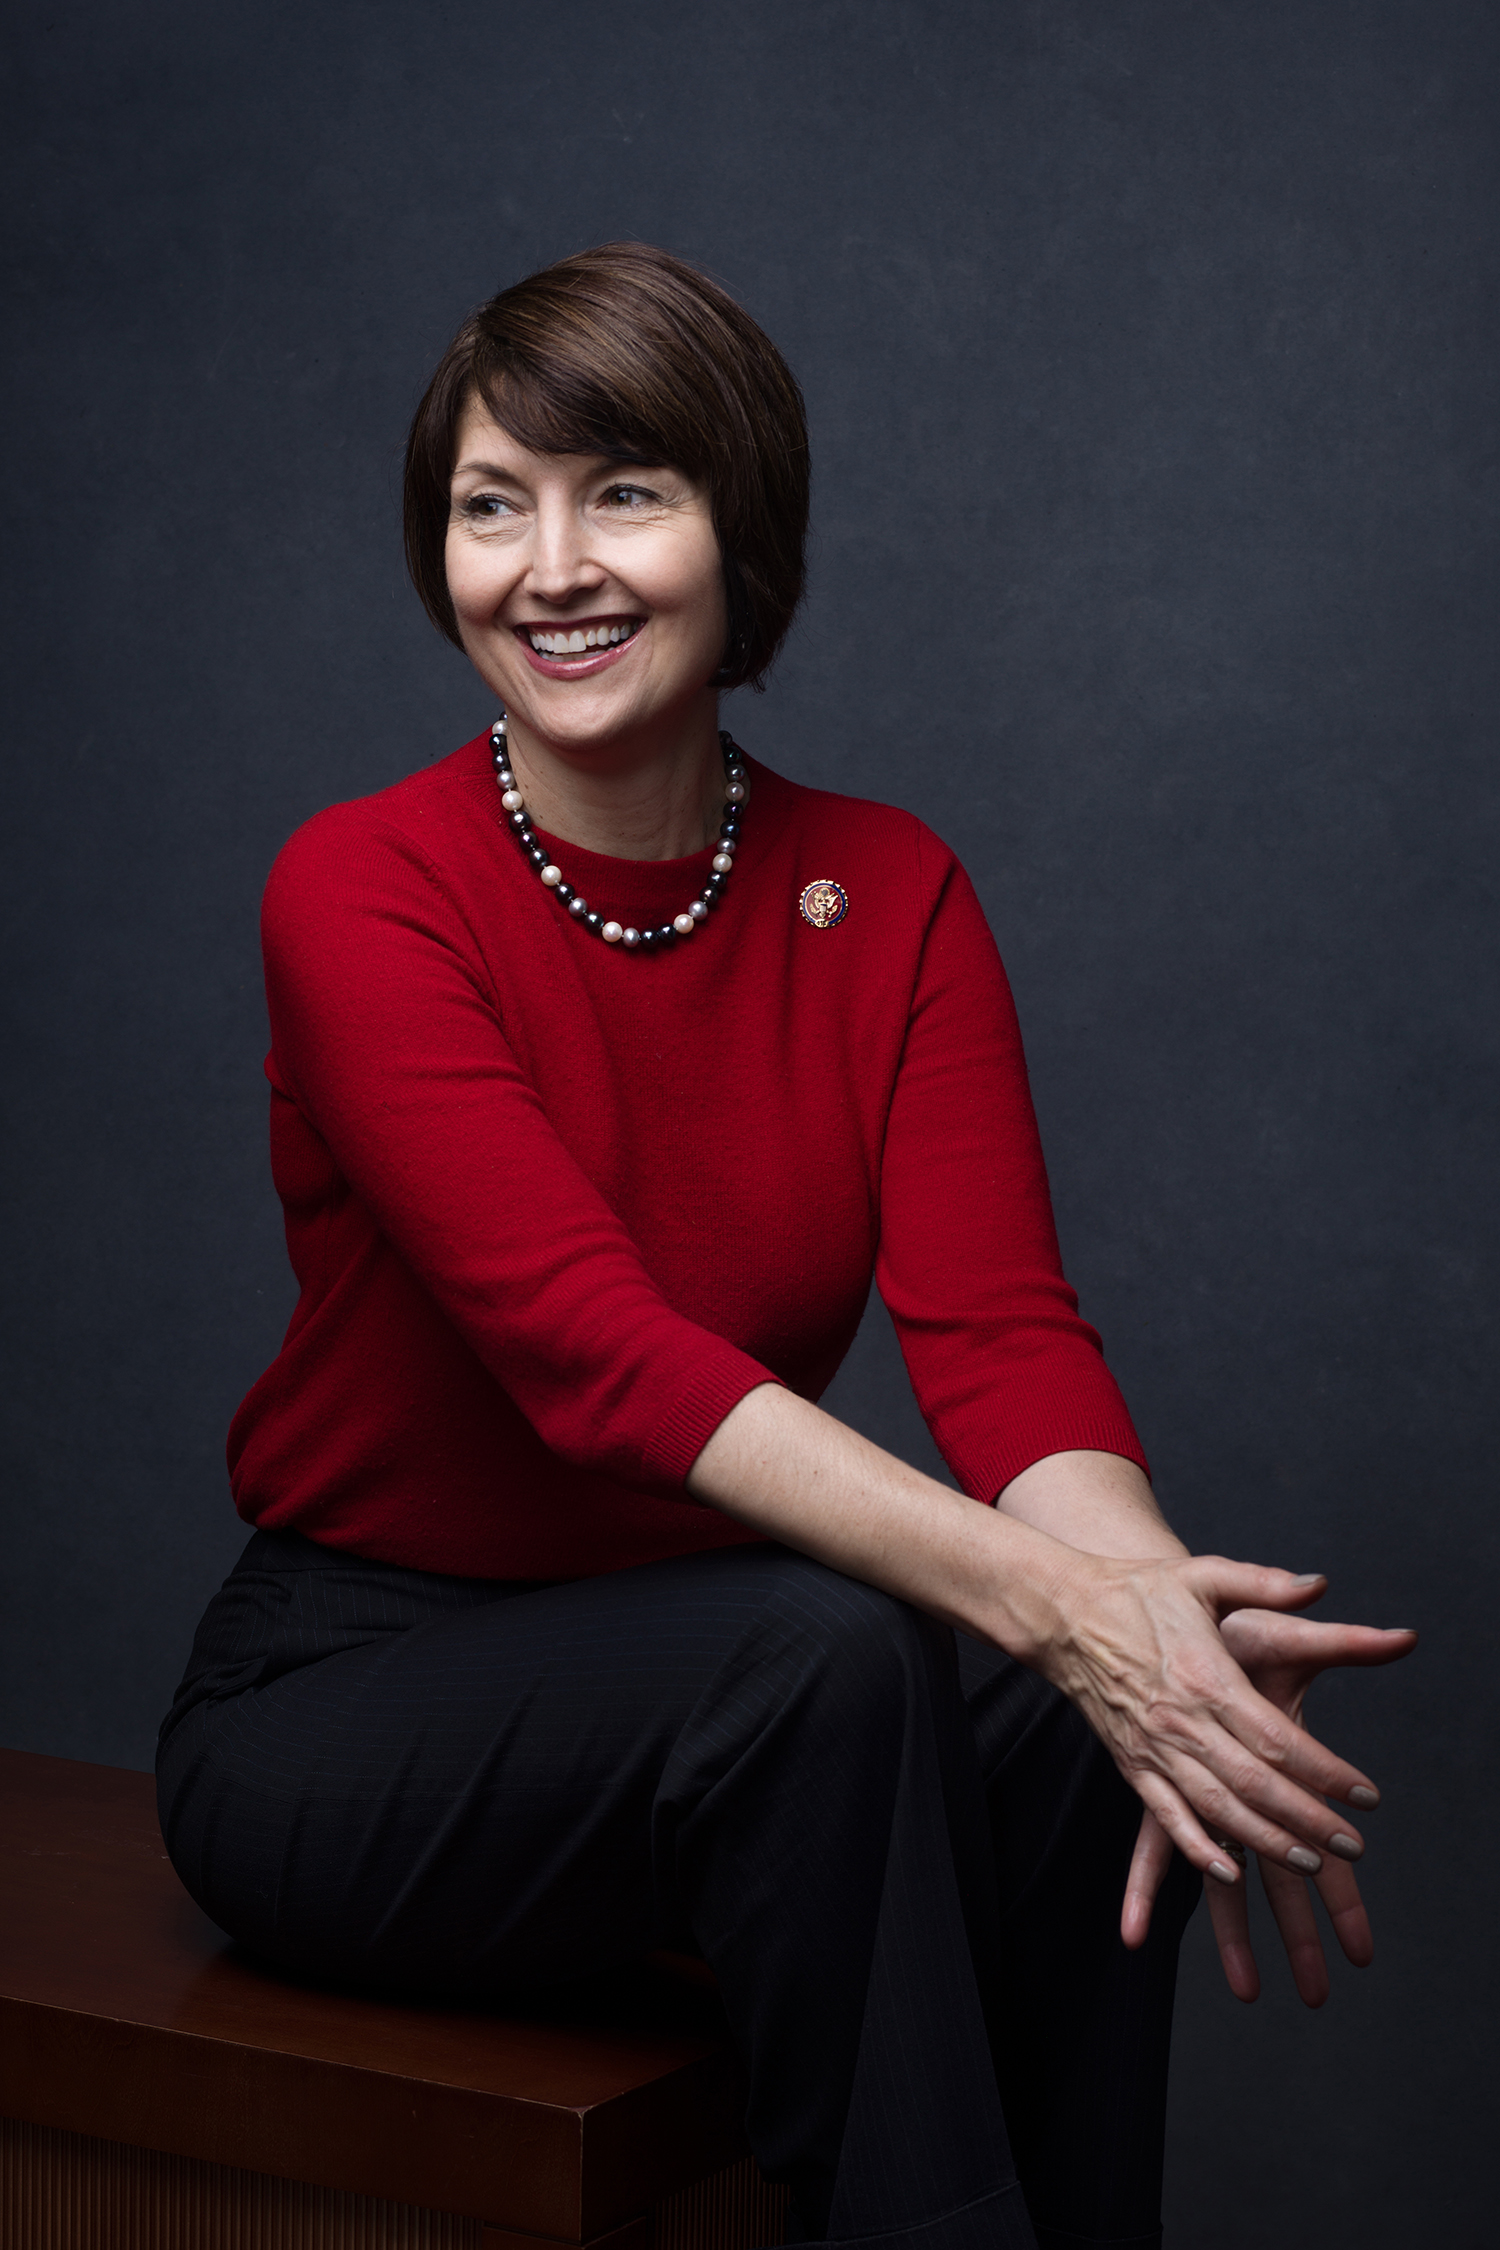 ***HOLD FOR WOMEN IN CONGRESS PROJECT, CONTACT MARISA SCHWARTZ TAYLOR*** Cathy McMorris RodgersCredit: Celeste Sloman for The New York Times                              NYTCREDIT: Celeste Sloman for The New York Times